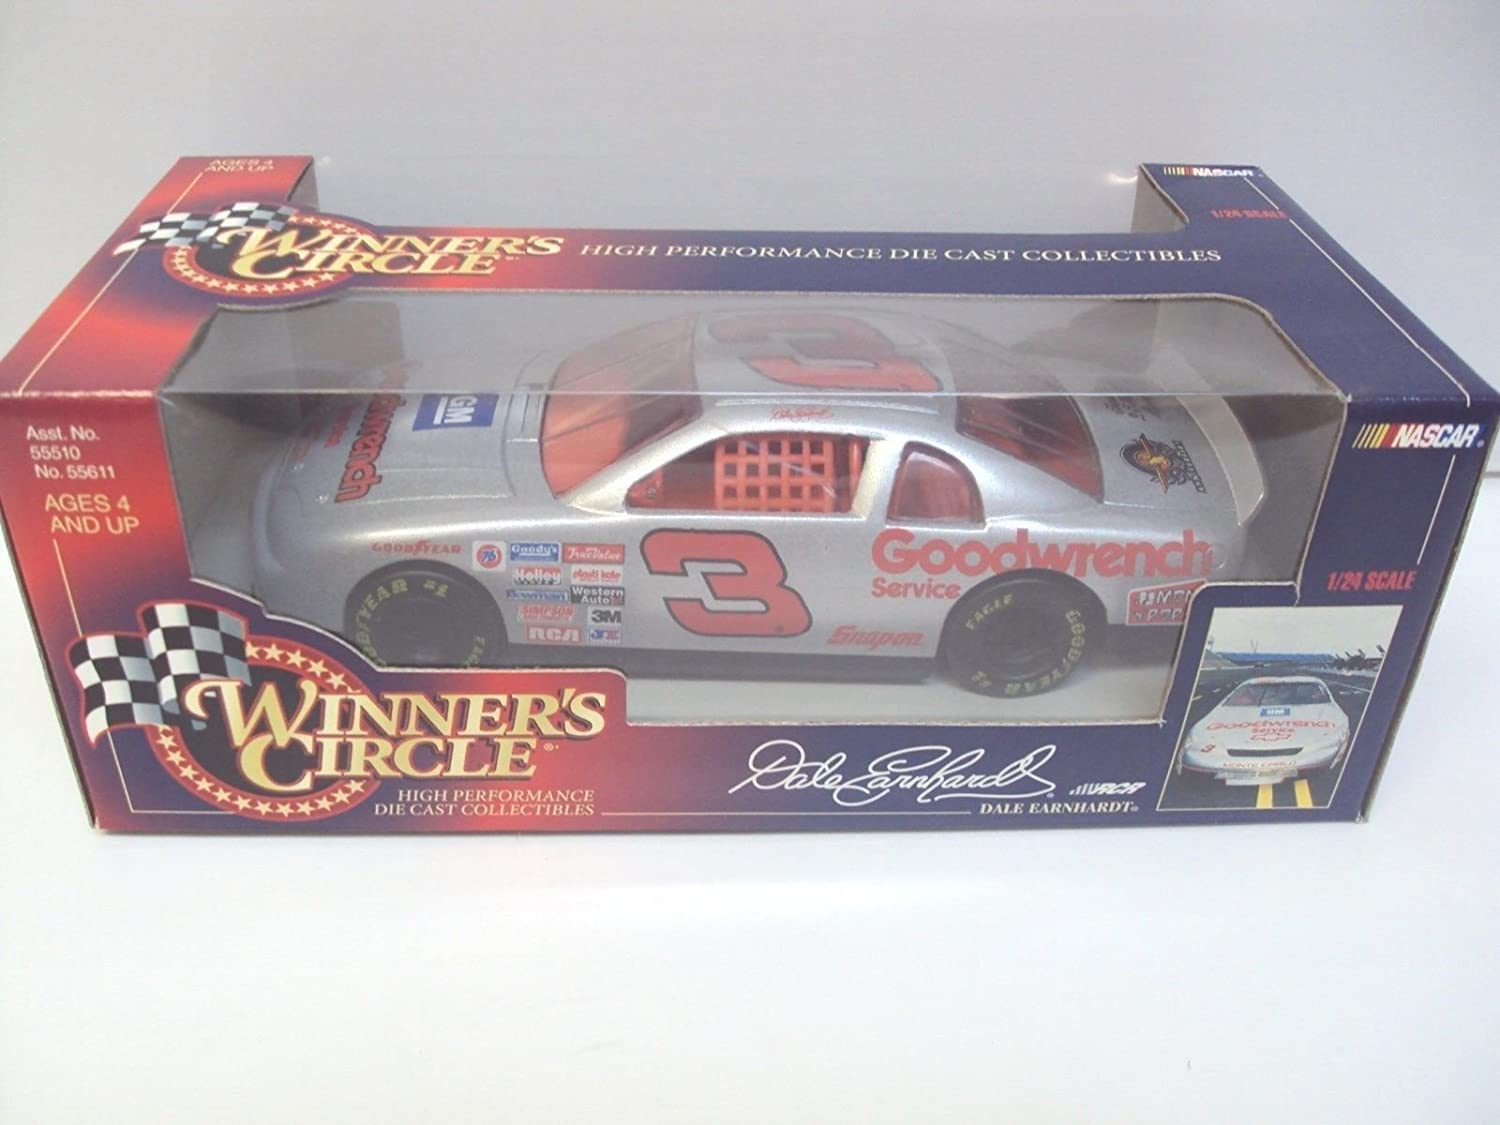 1995 Dale Earnhardt Sr # 3 GM Goodwrench The Winston選択シルバーAnniversary Winston 1 / 24 1 : 24スケールWinners Circle B01CJ76KNM